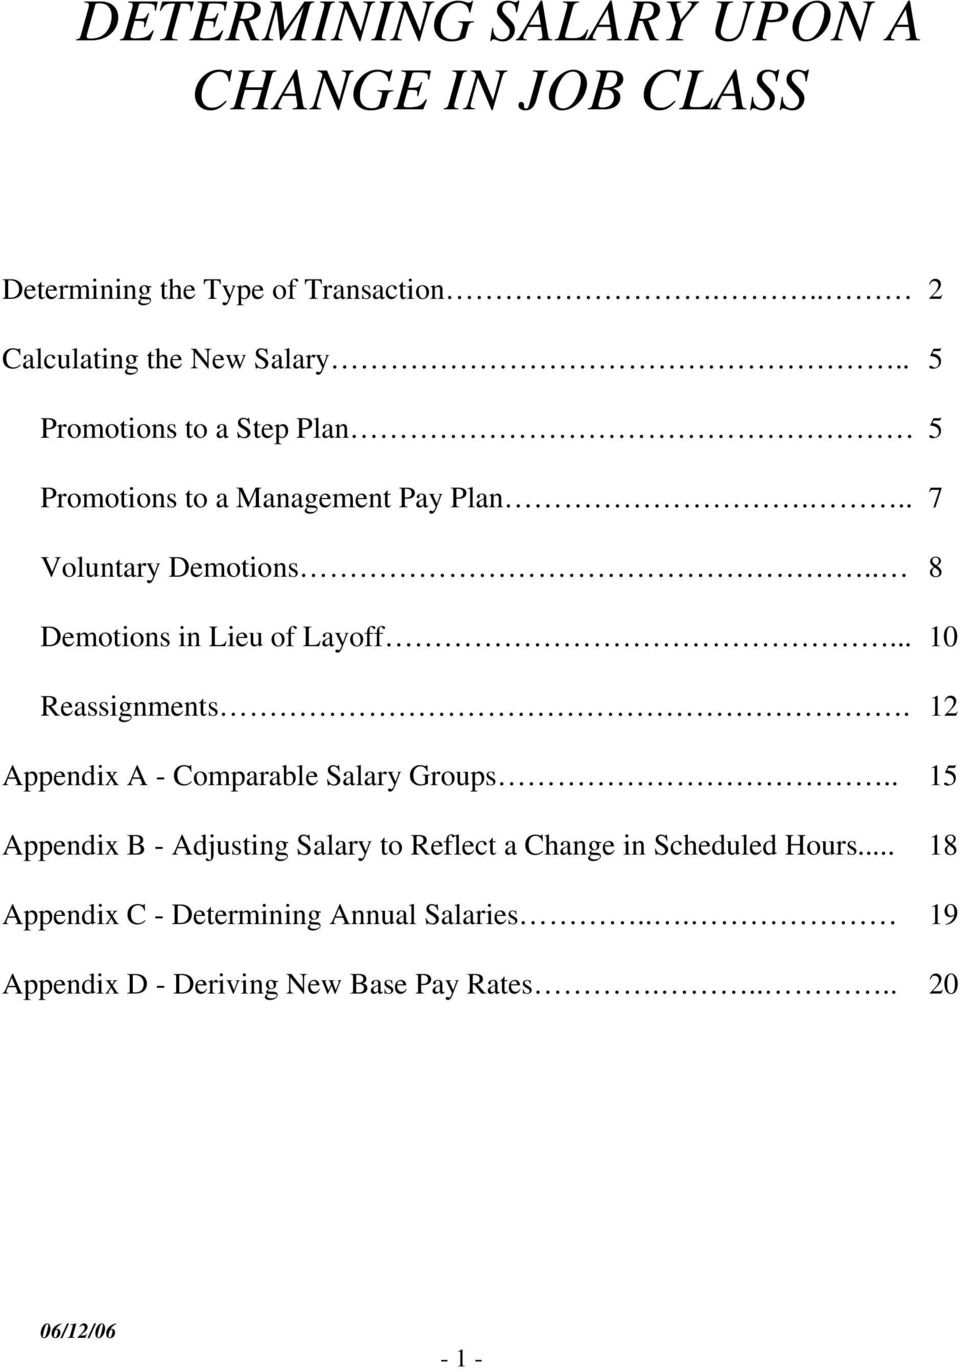 DETERMINING SALARY UPON A CHANGE IN JOB CLASS   PDF Free Download